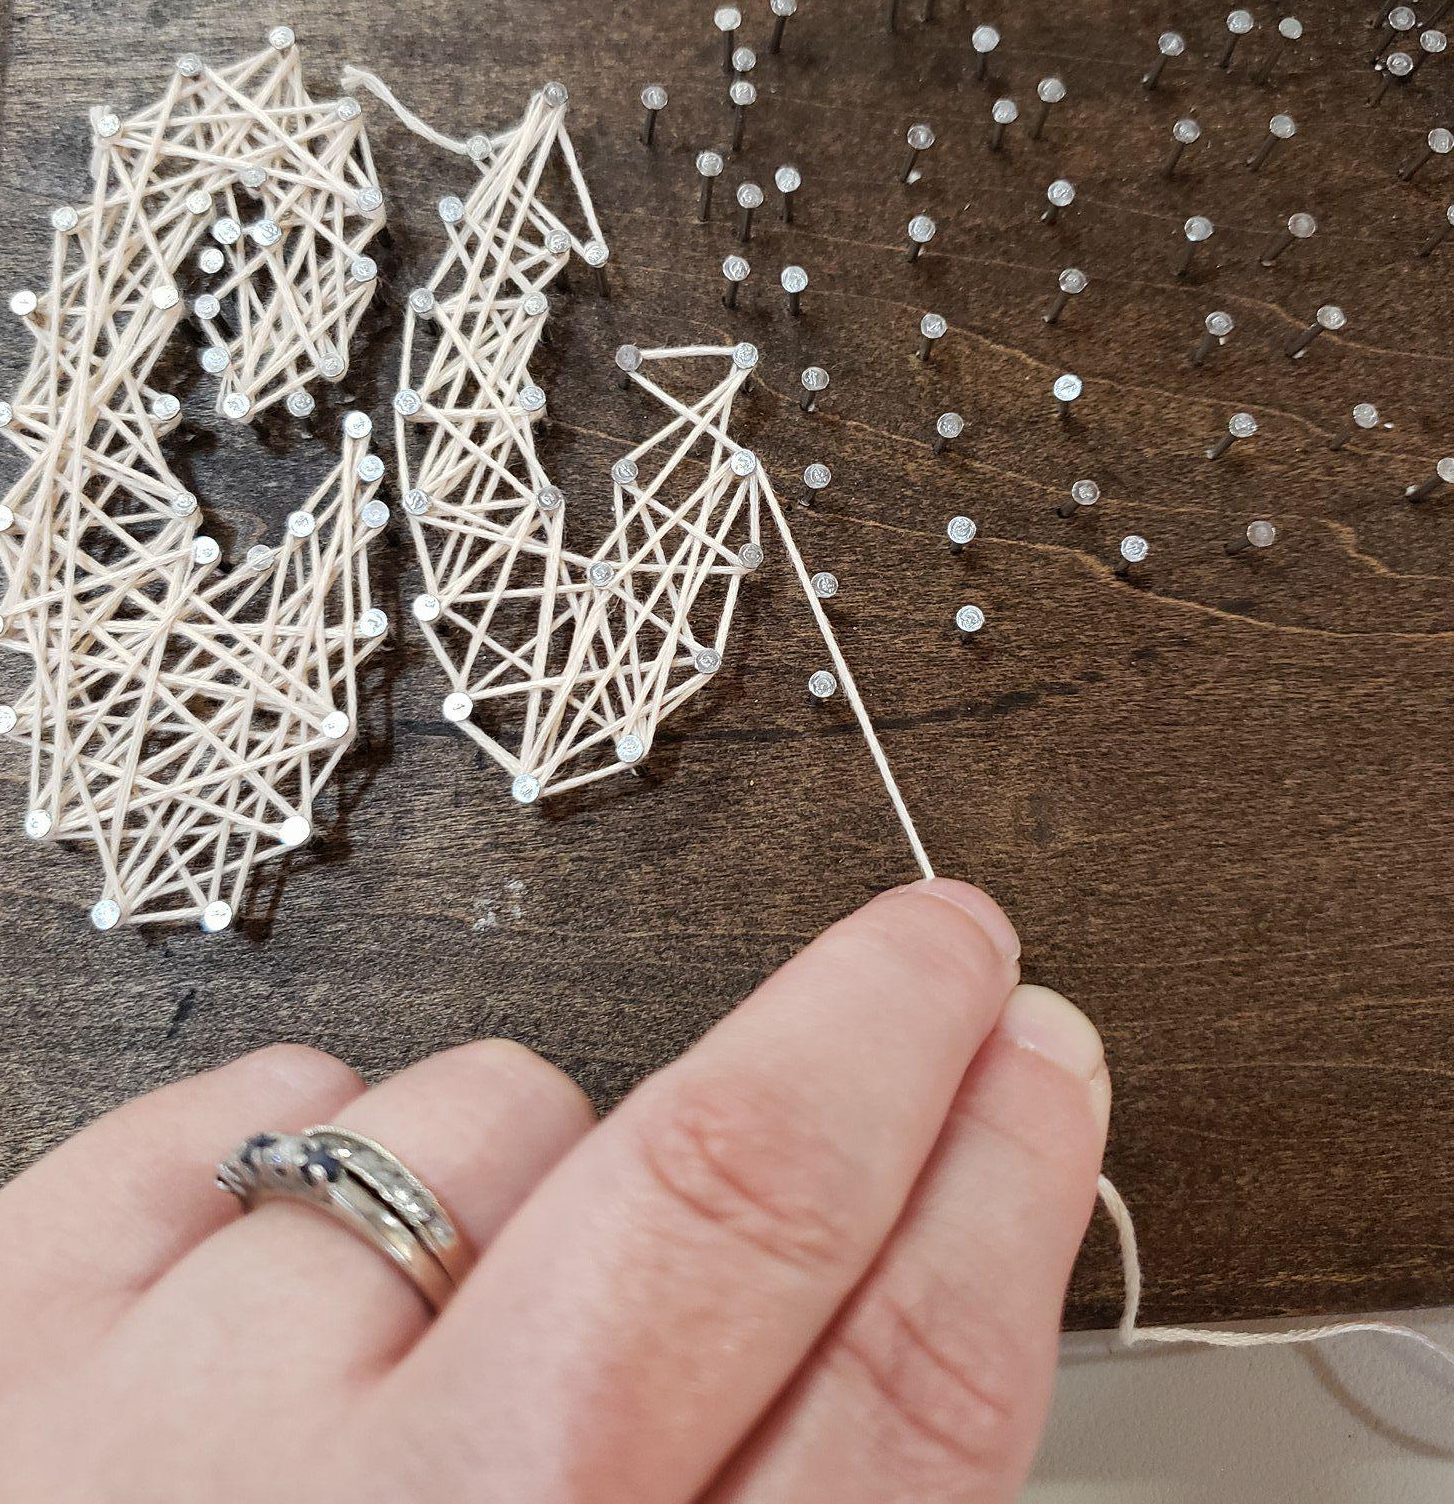 wrapping string around the nails